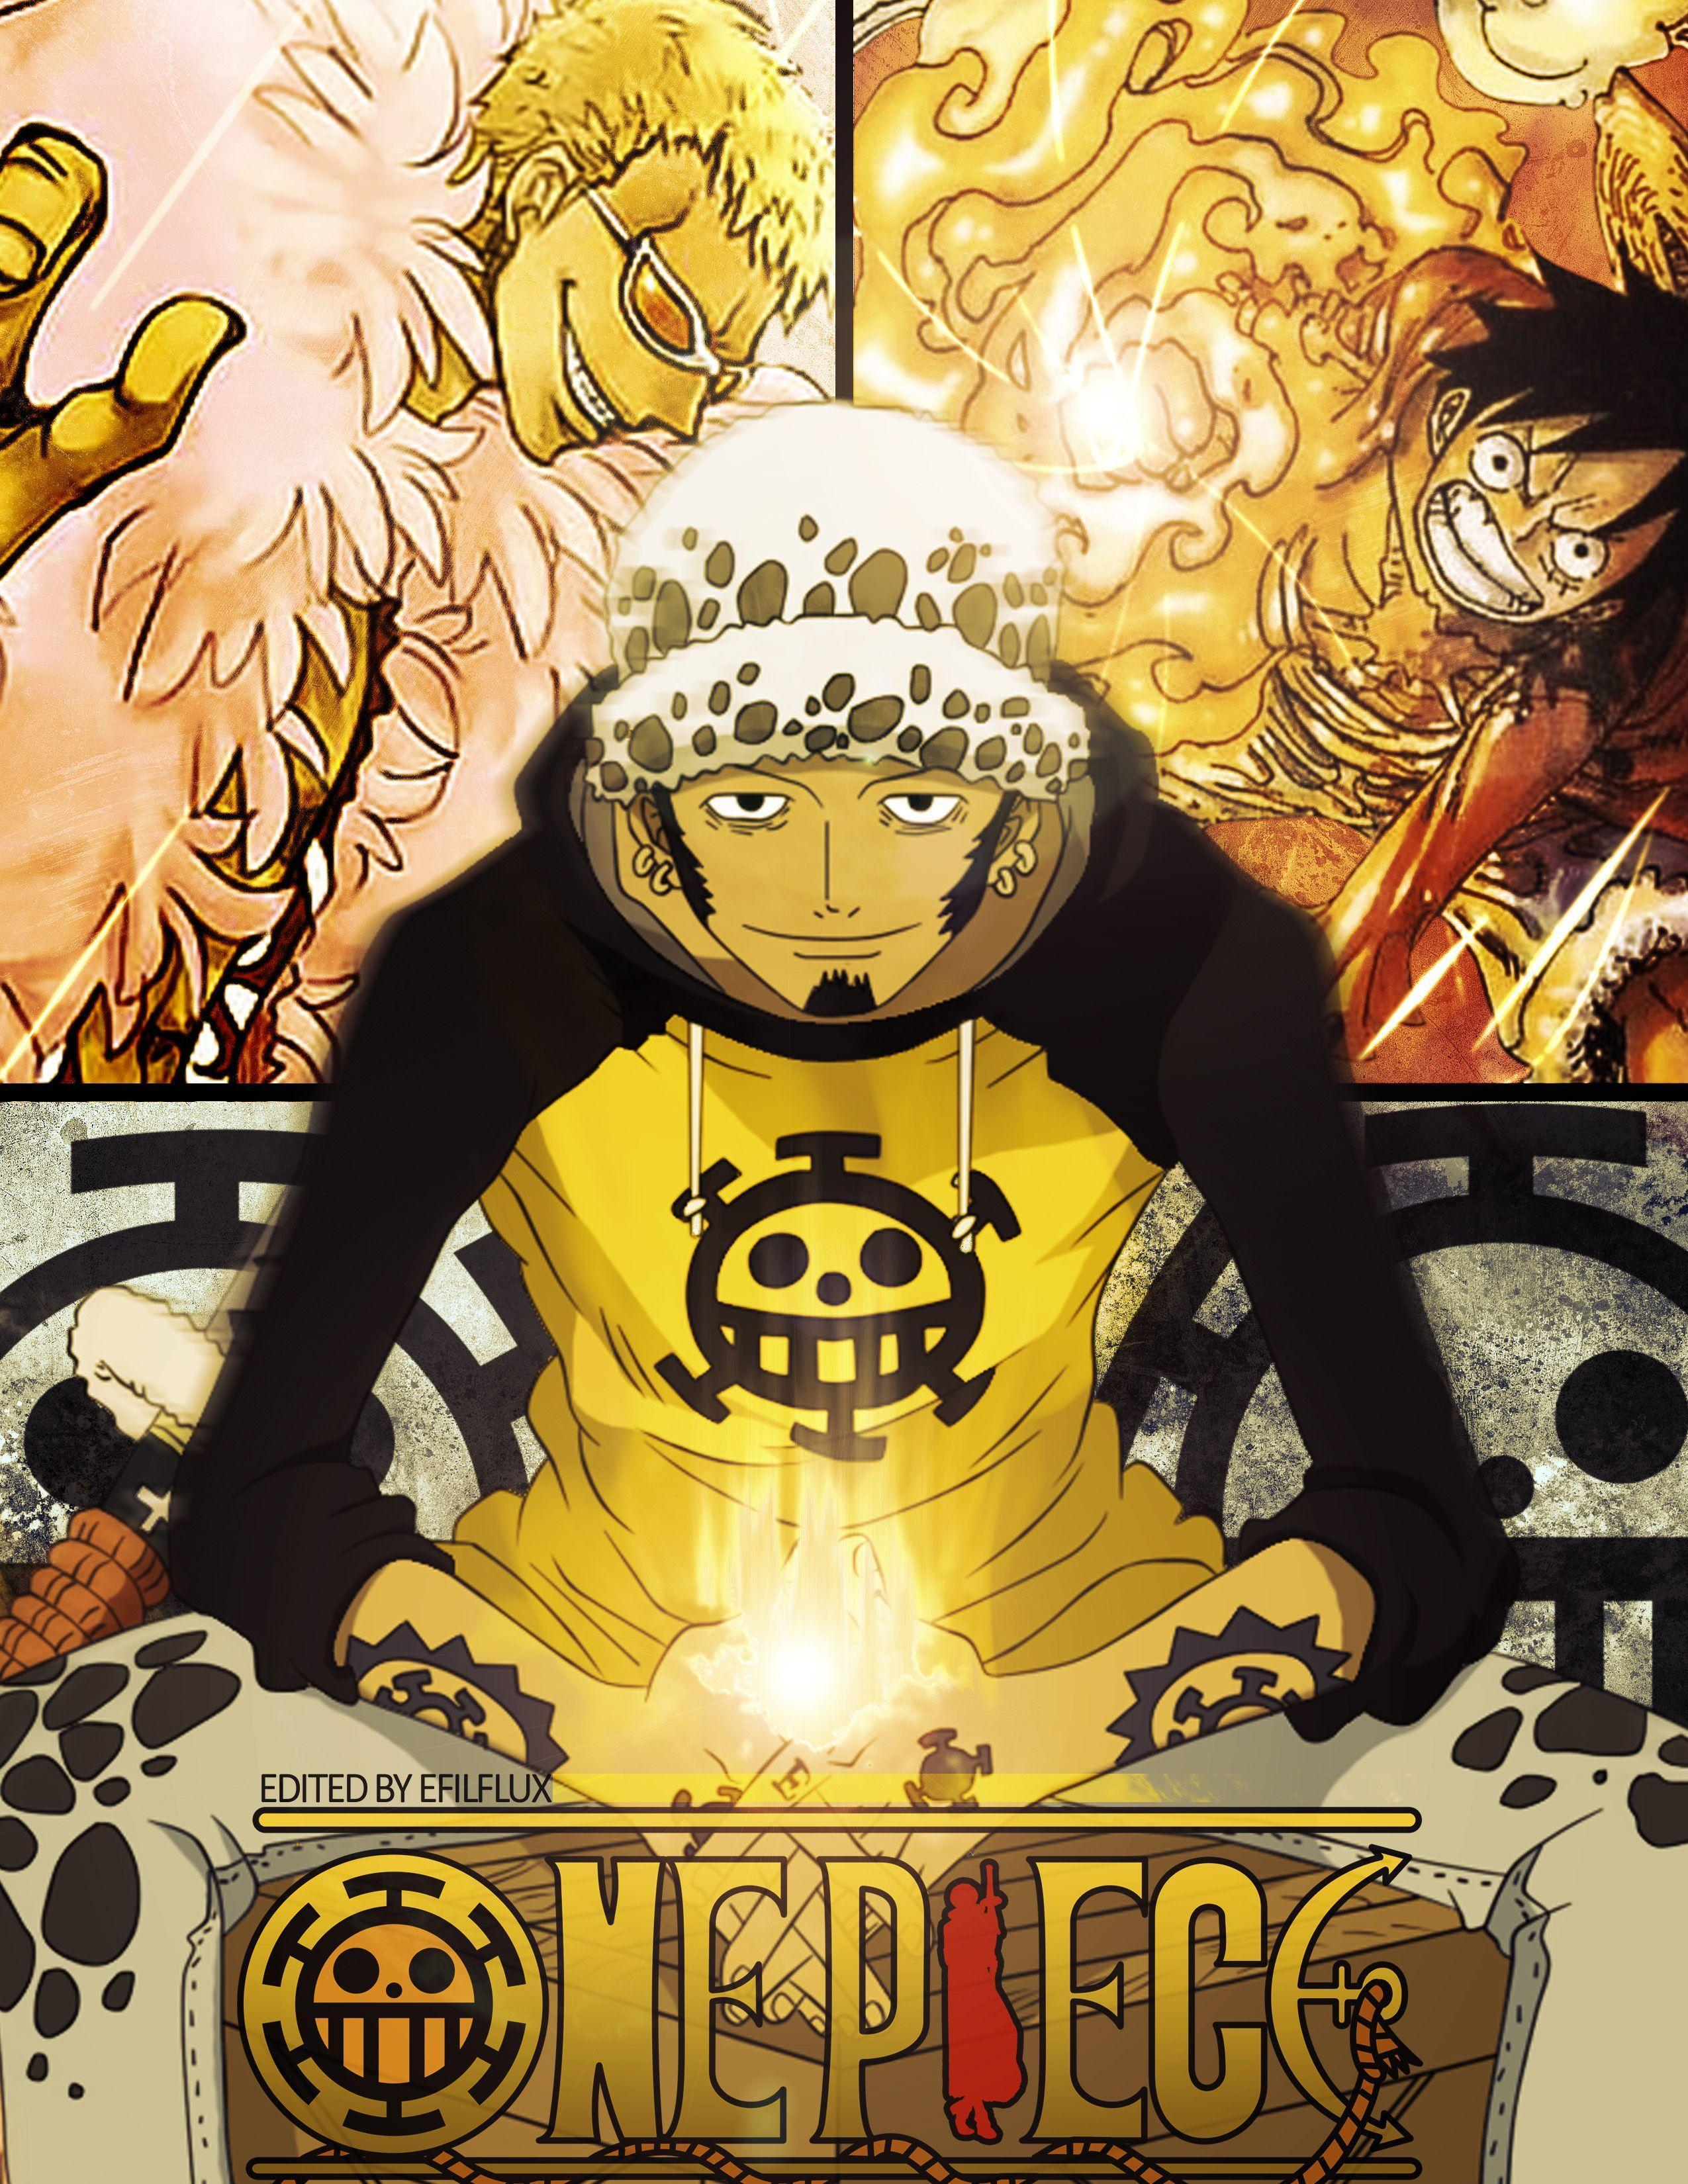 Law One Piece Iphone Wallpapers Top Free Law One Piece Iphone Backgrounds Wallpaperaccess